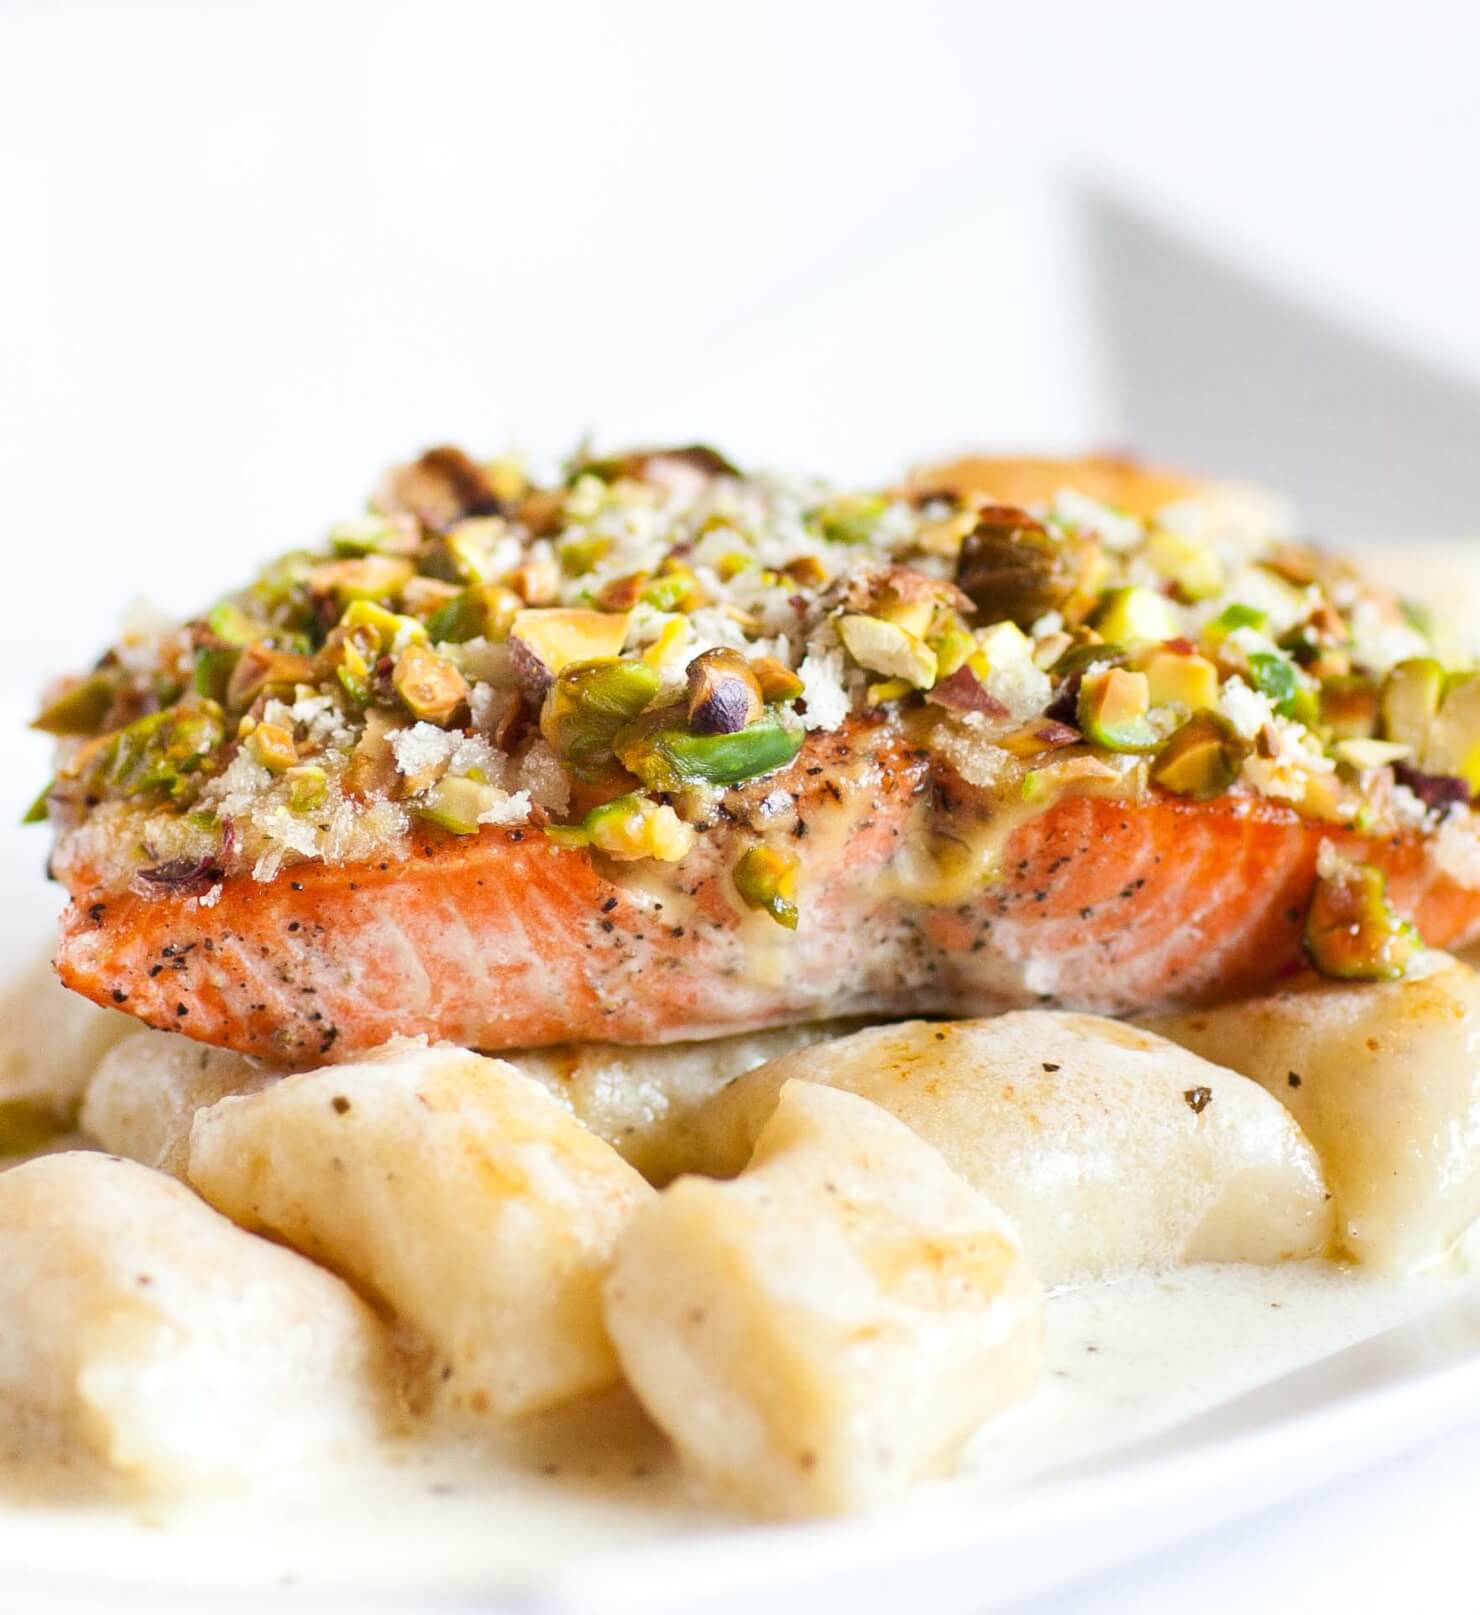 Pistachio-Crusted Salmon with Wilted Spinach